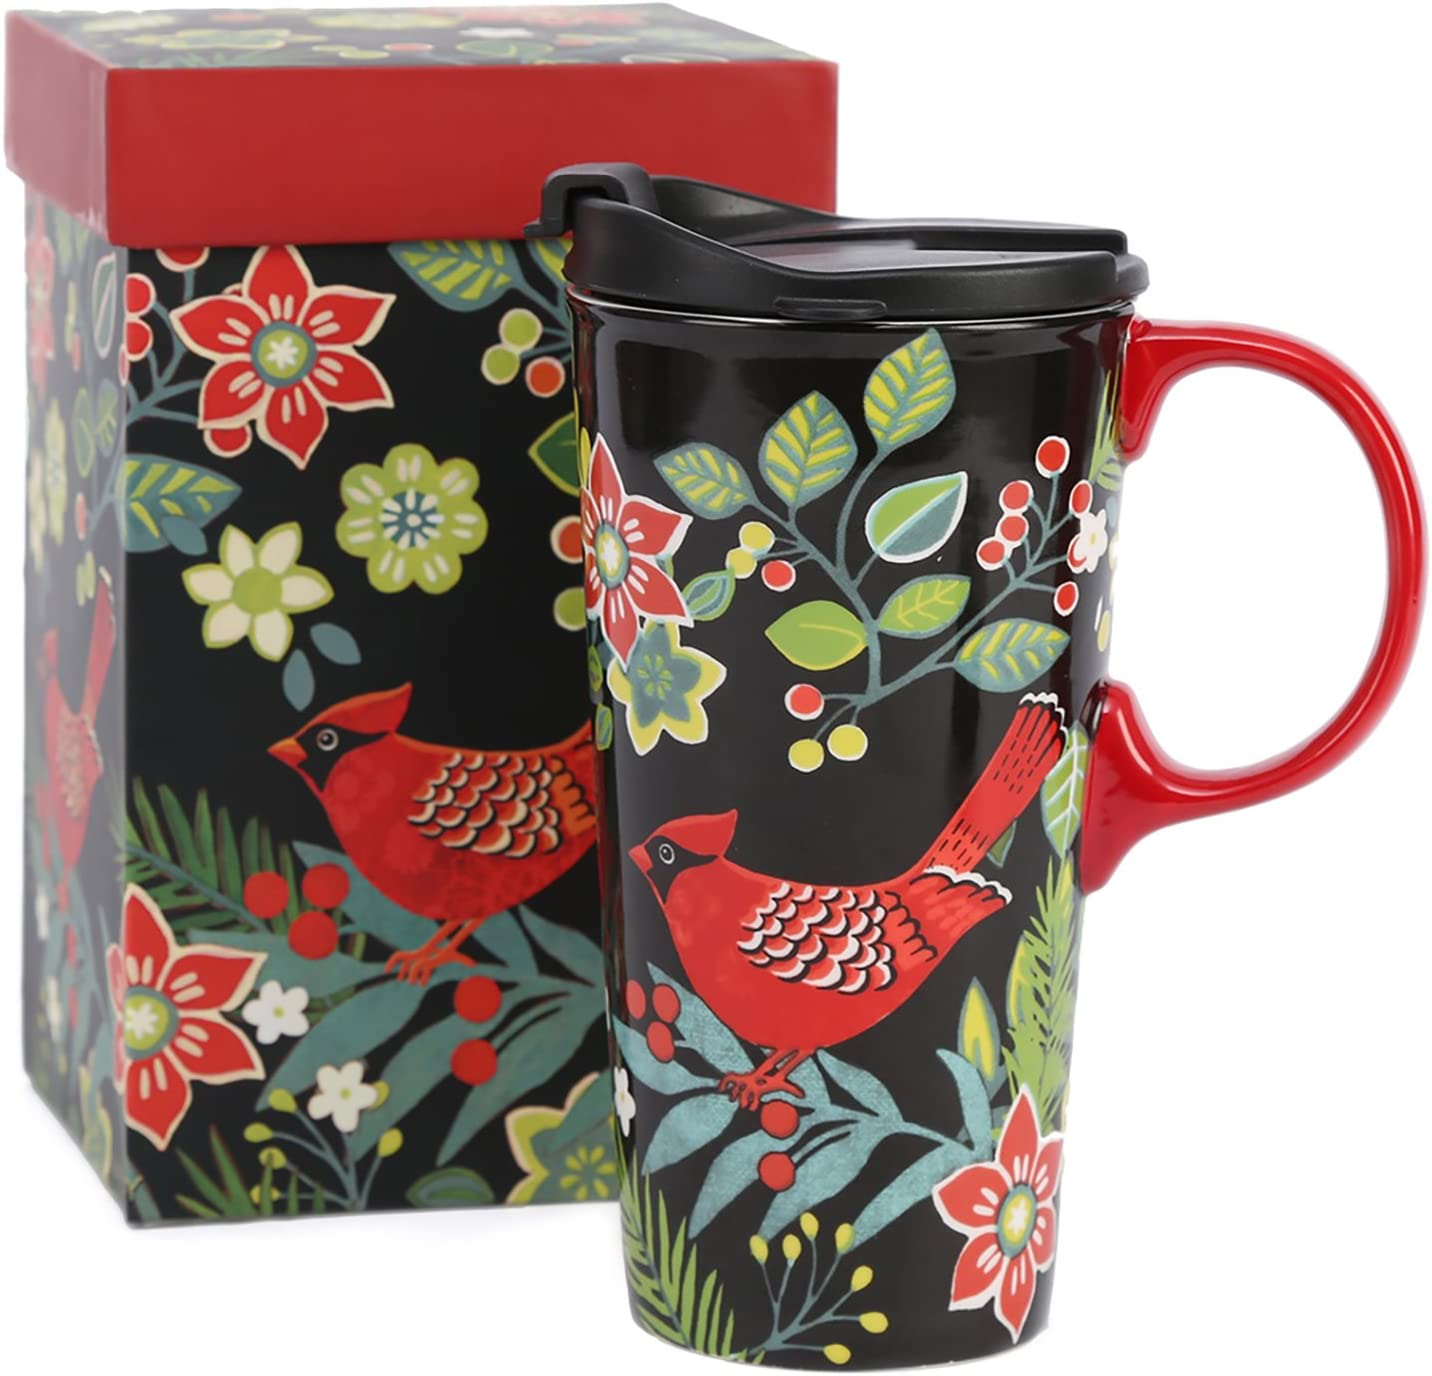 CEDAR HOME Coffee Ceramic Mug Porcelain Latte Tea Cup With Lid in Gift Box 17ounce. Cardinal Bird